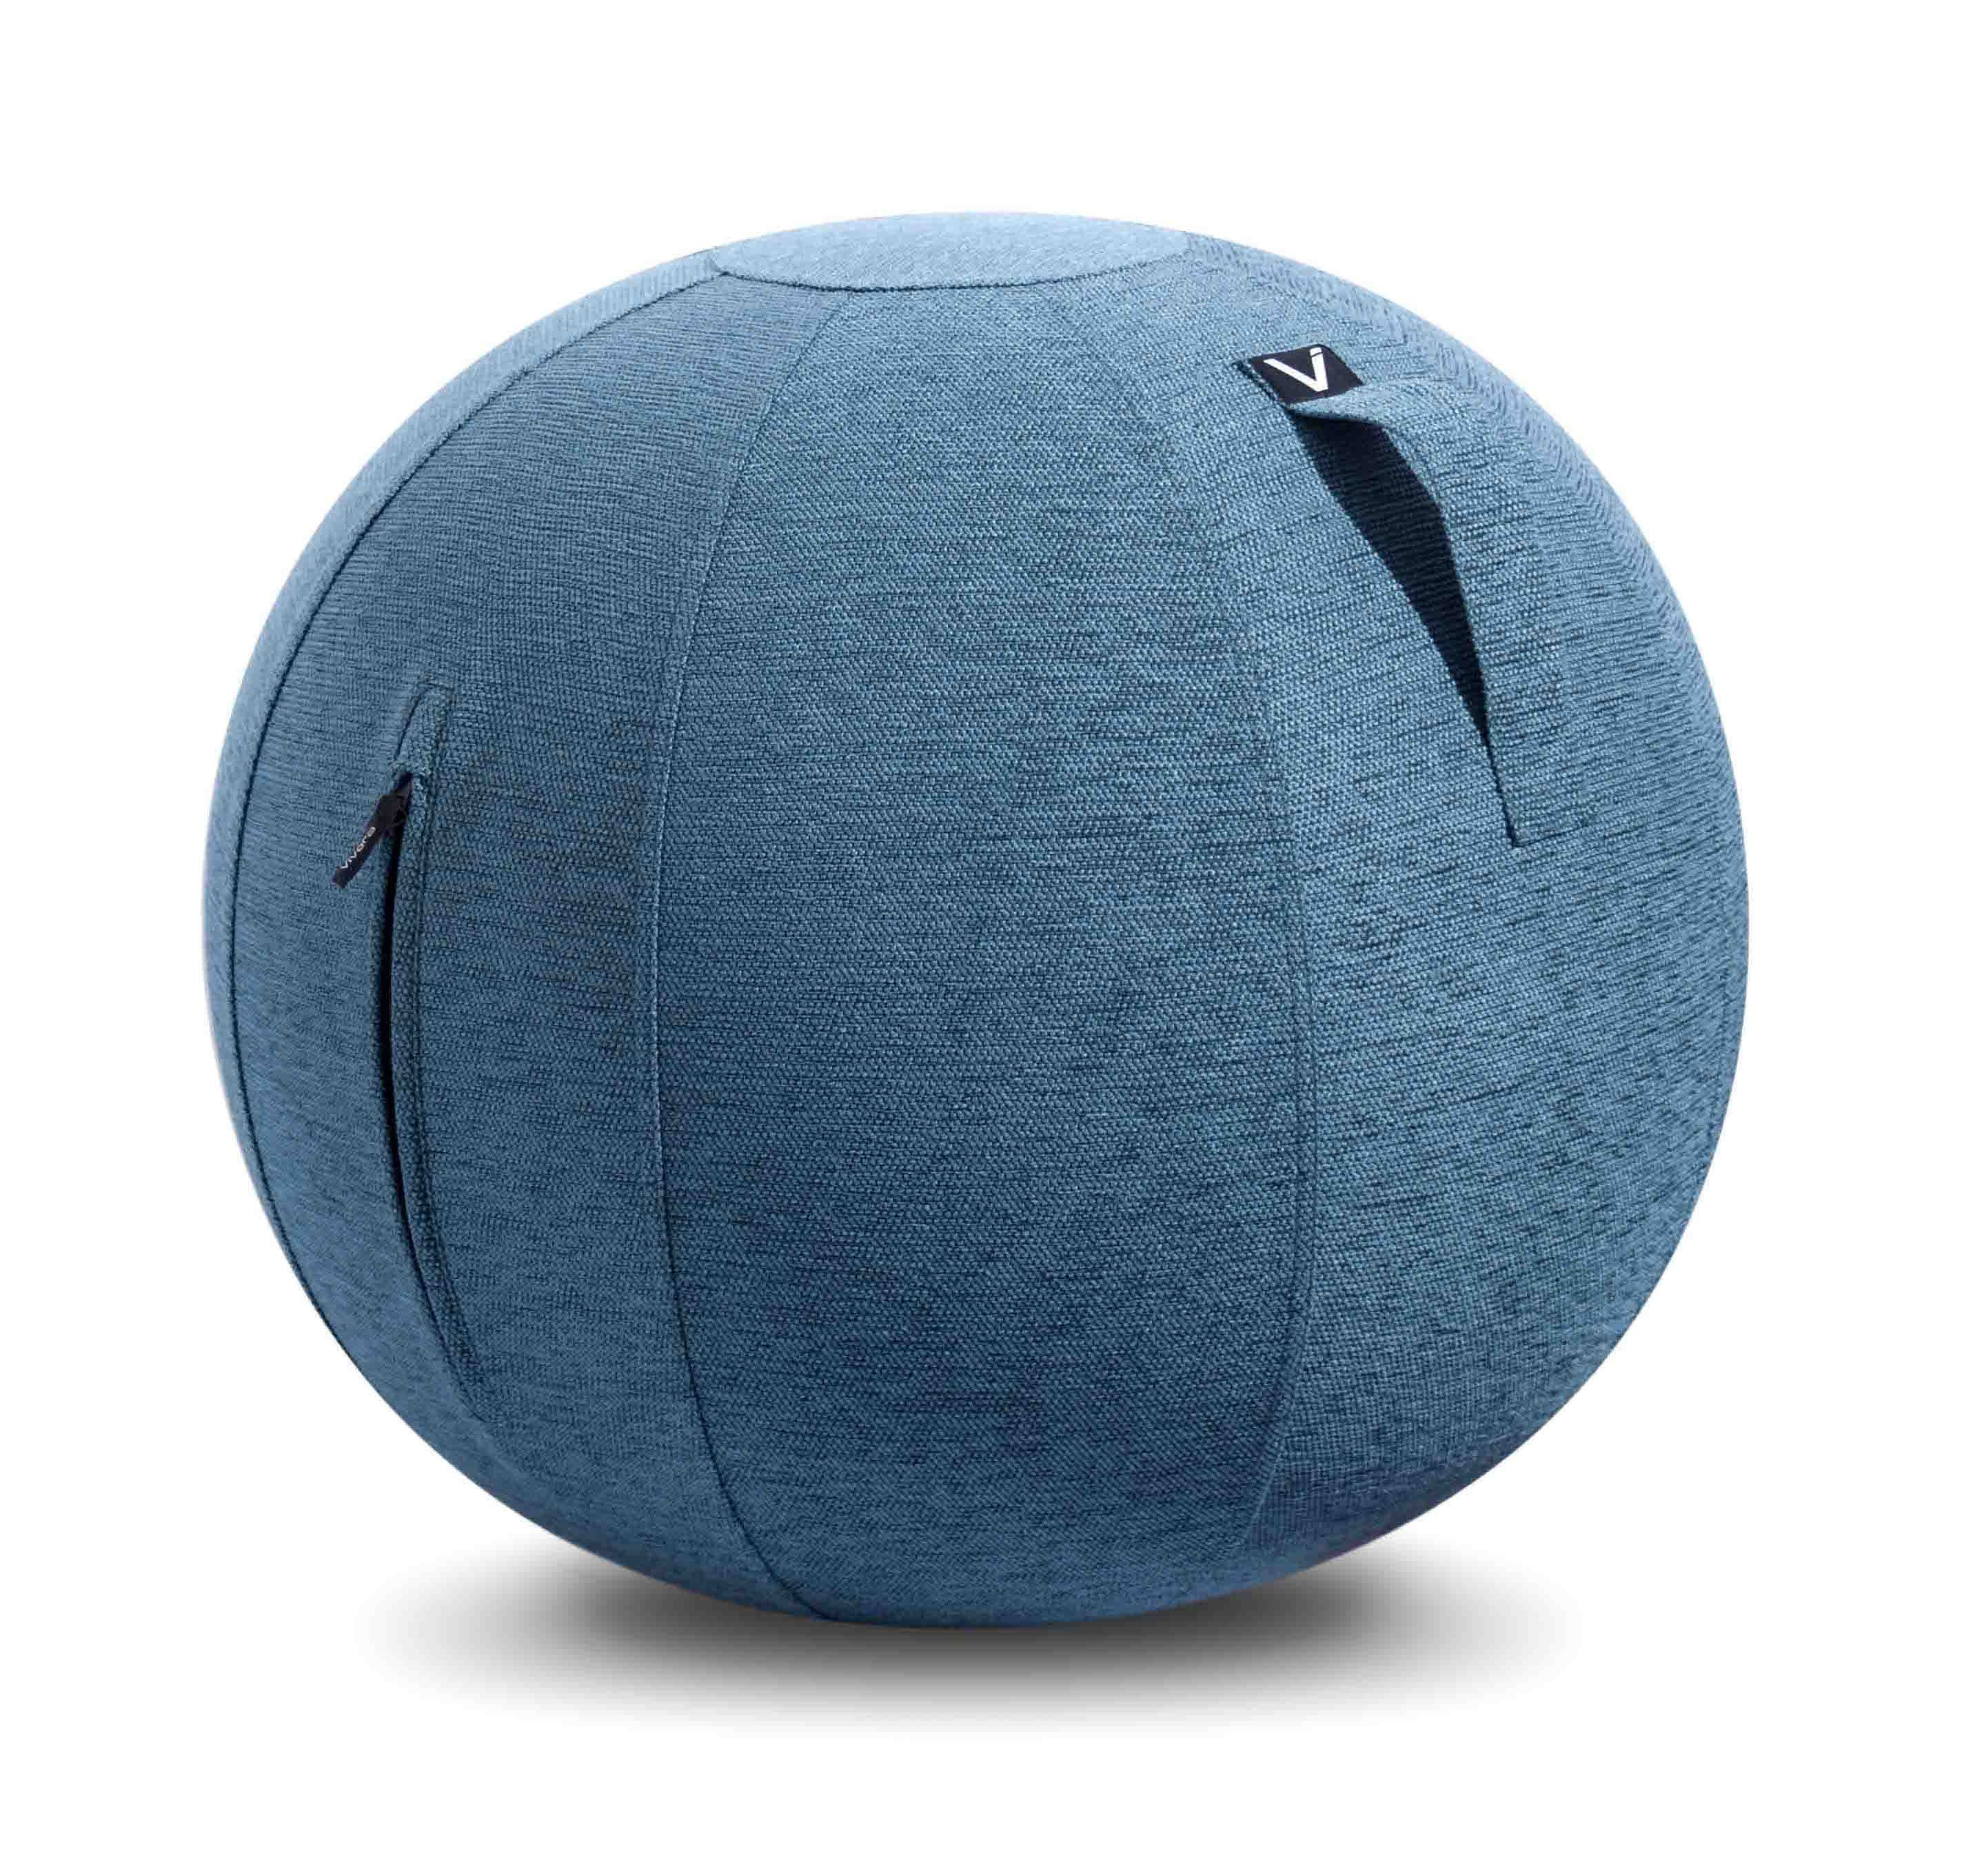 PACEARTH Exercise Ball(Blue) in 2020 Exercise ball